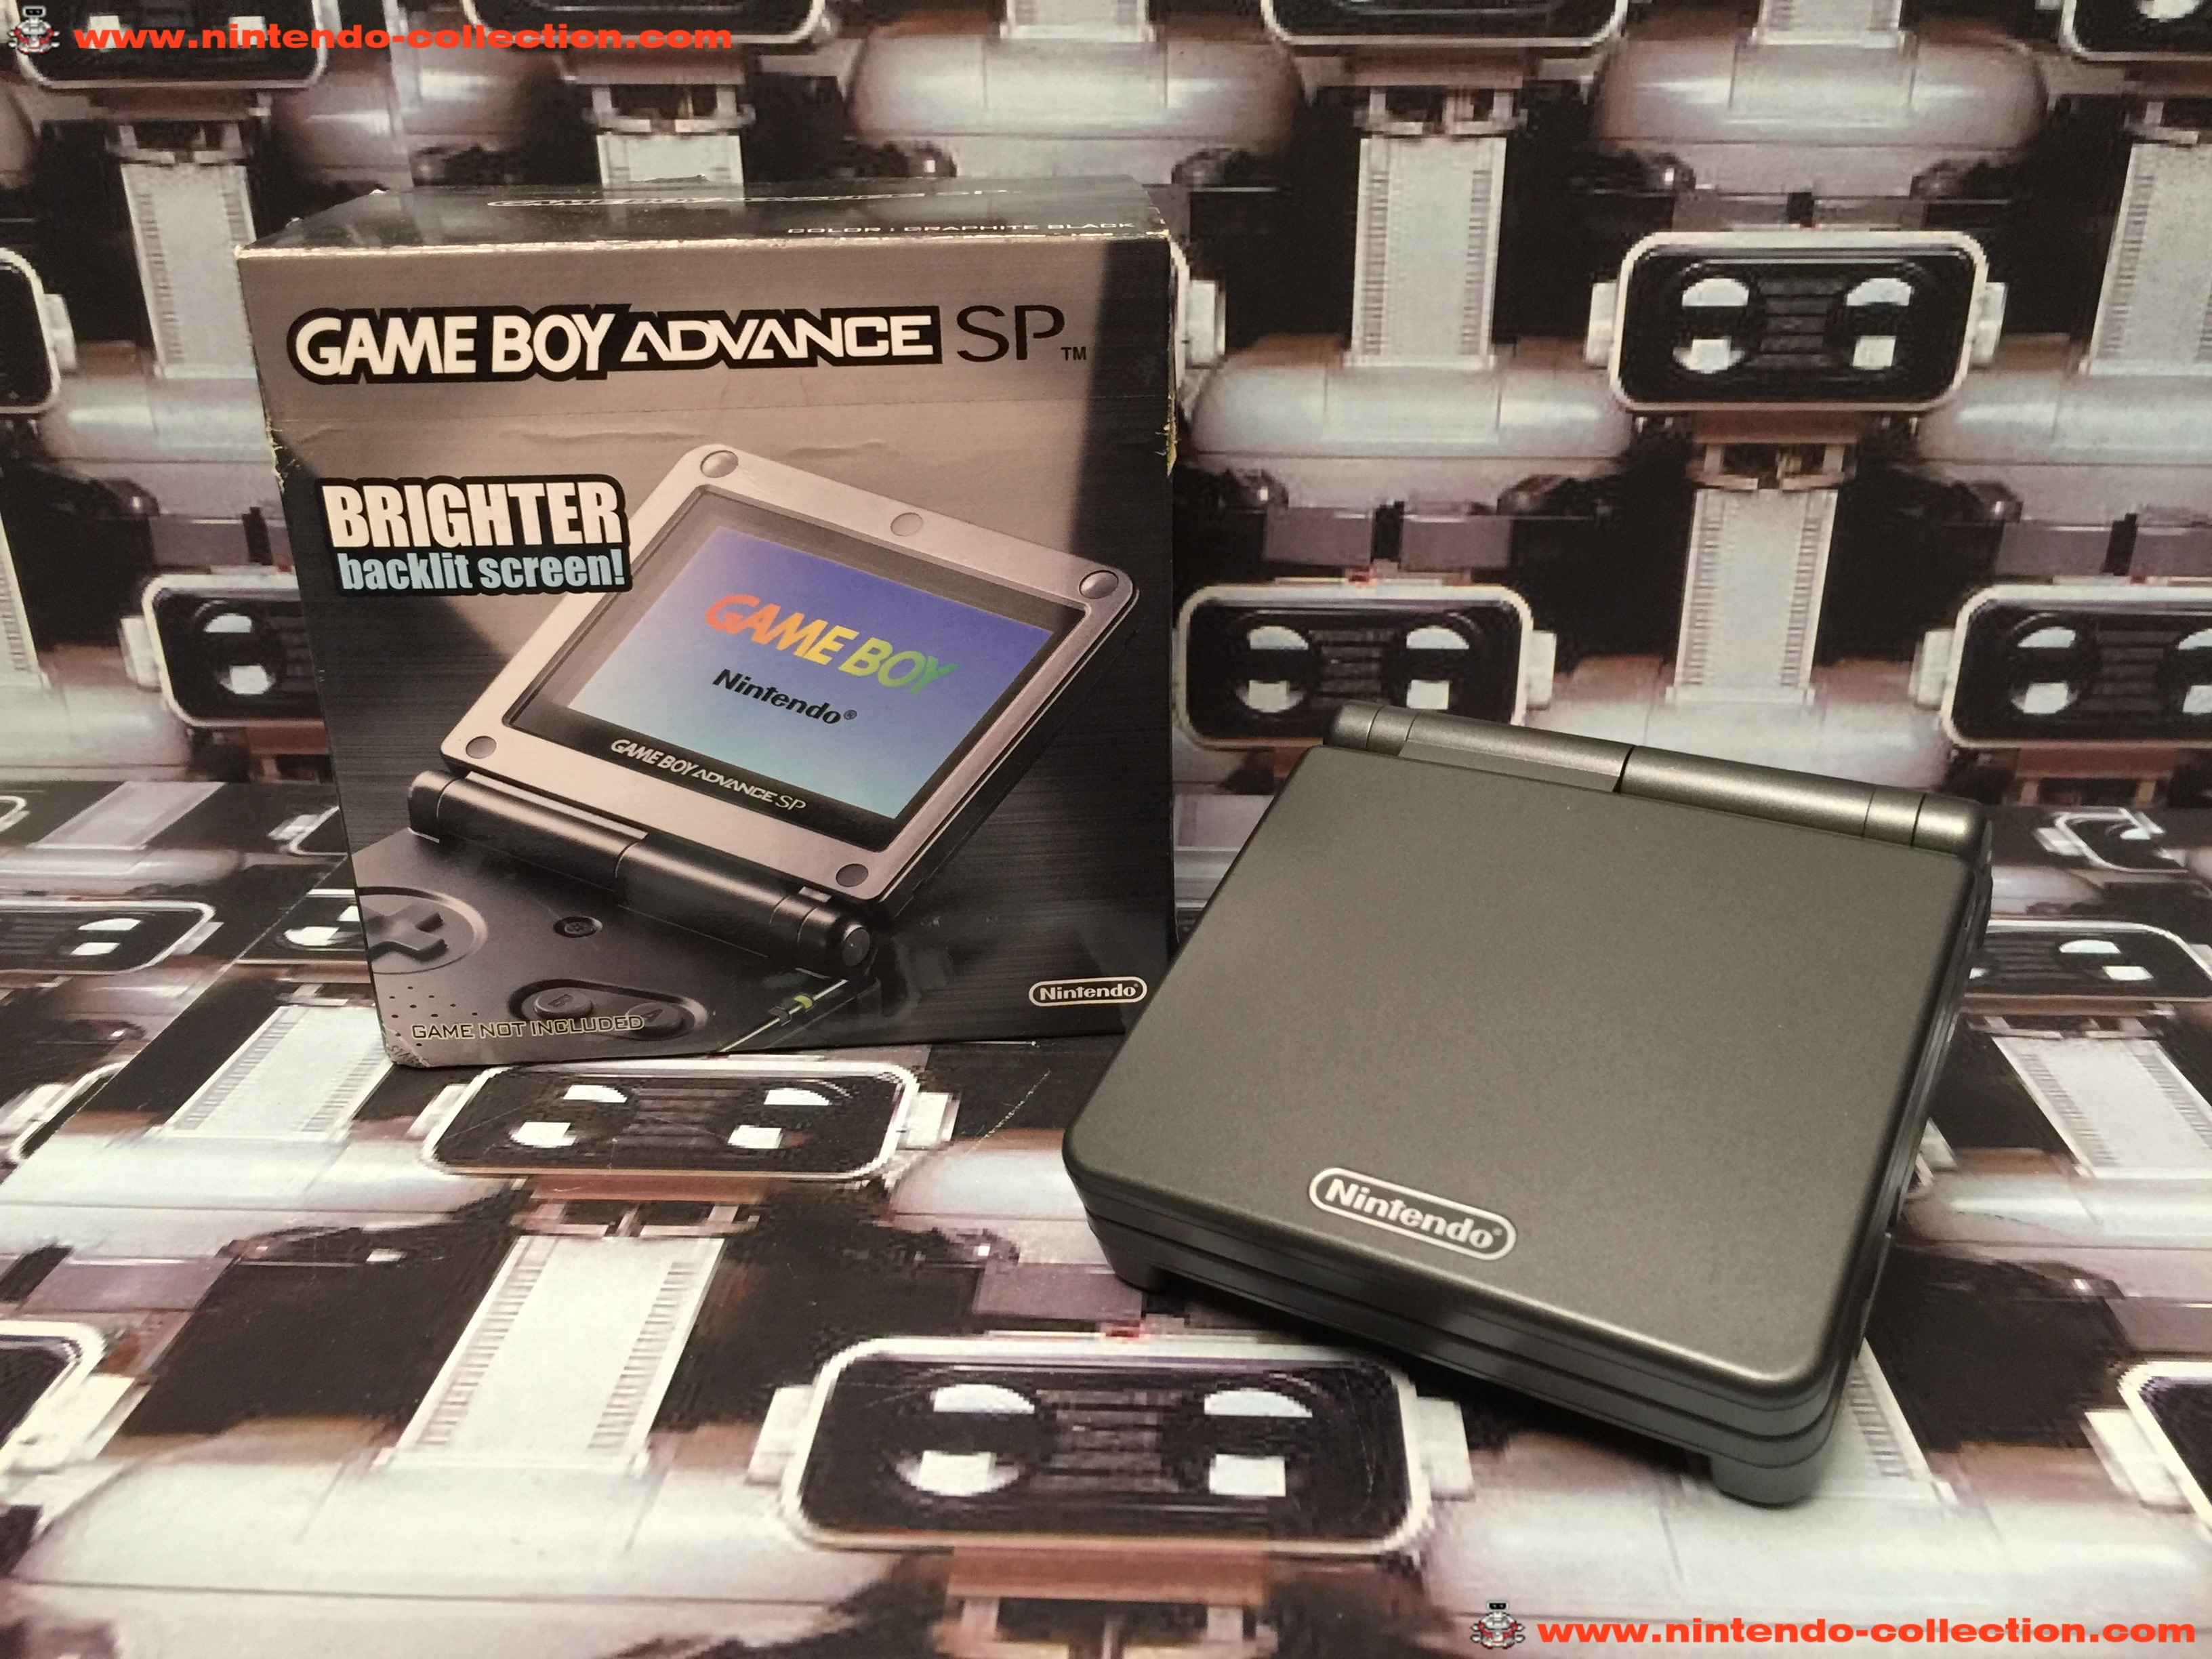 www.nintendo-collection.com - Gameboy Advance GBA SP Onyx Black Onyx Noir edition Hong Kong - 01